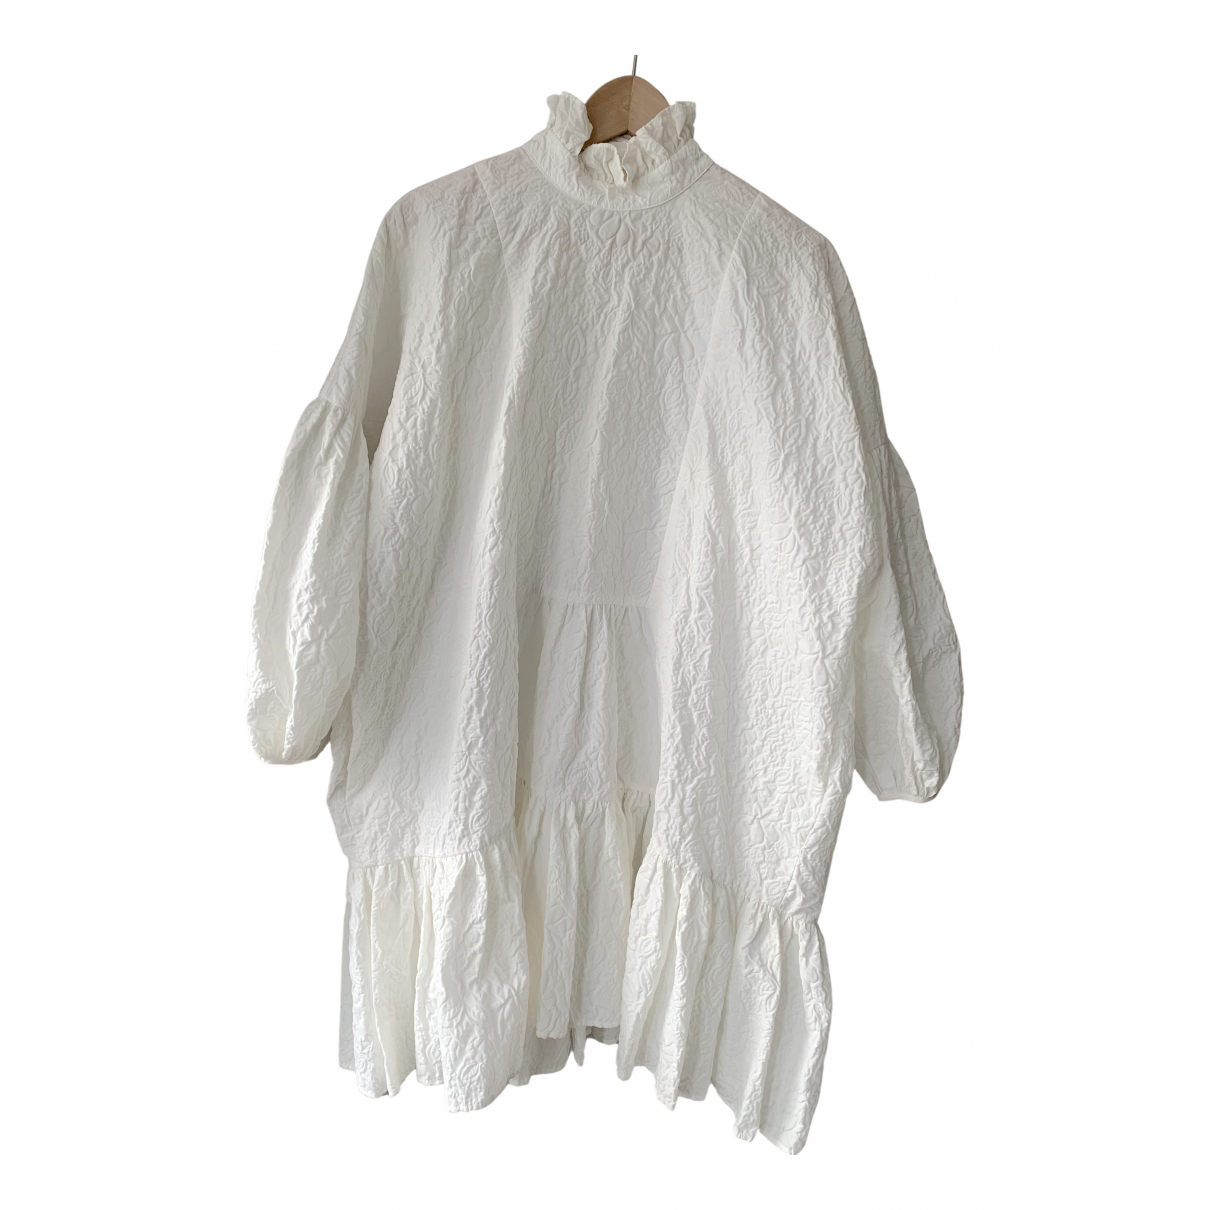 Cecilie Bahnsen N White Cotton dress for Women 6 UK